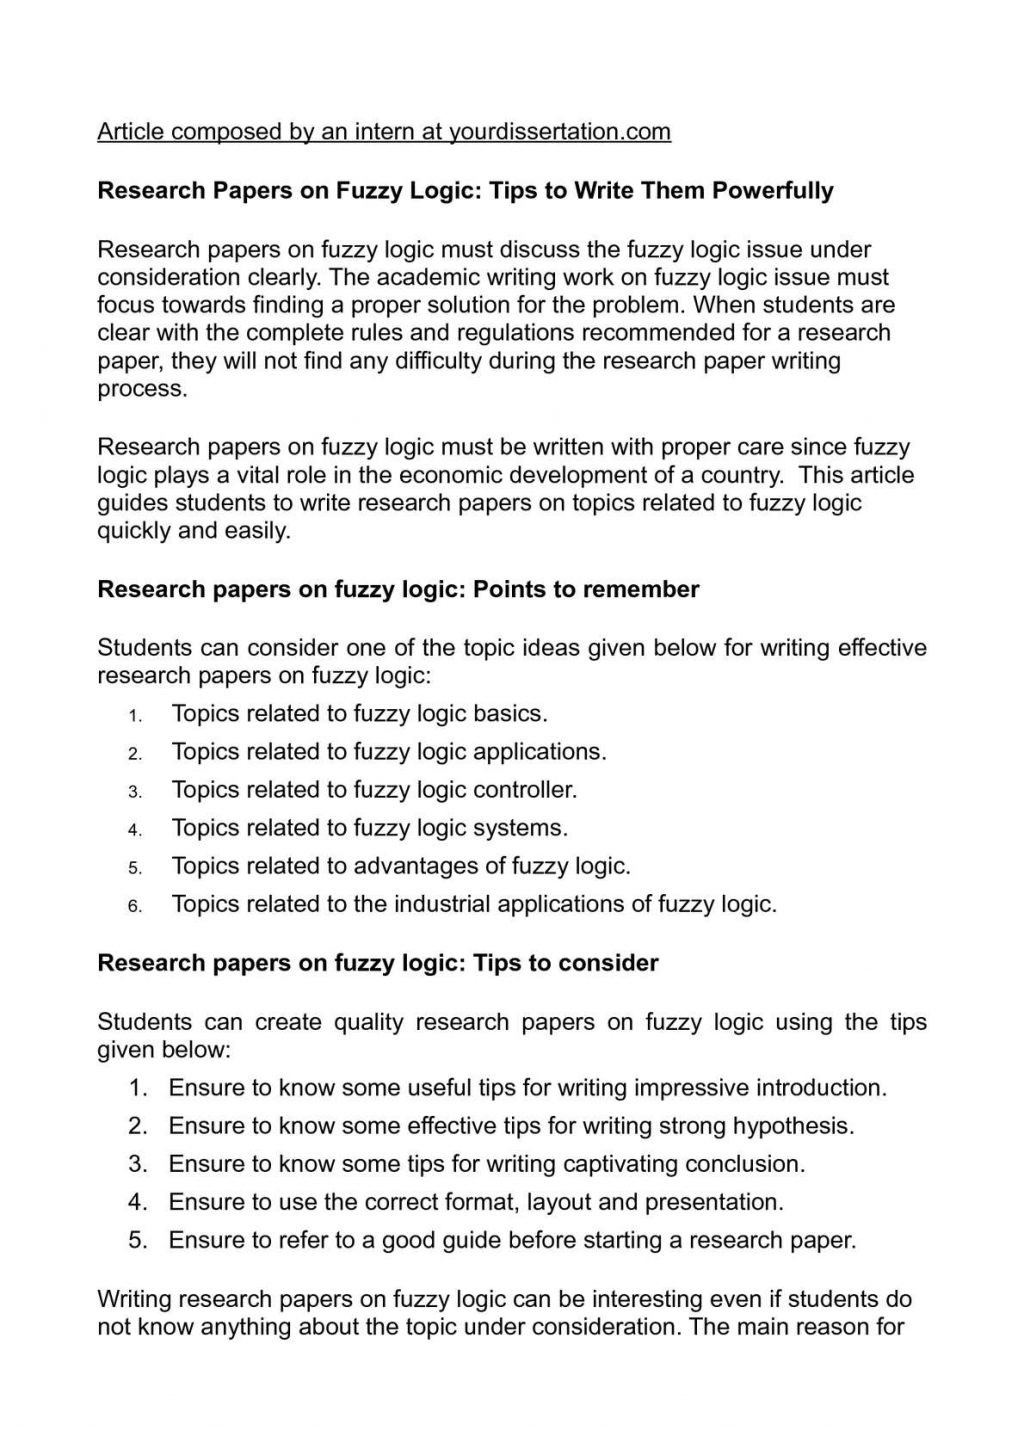 026 20research Paper Samples Fun Topics To Write On Psychology Economics20 1024x1449 About For Wonderful A Research Controversial Biology Large